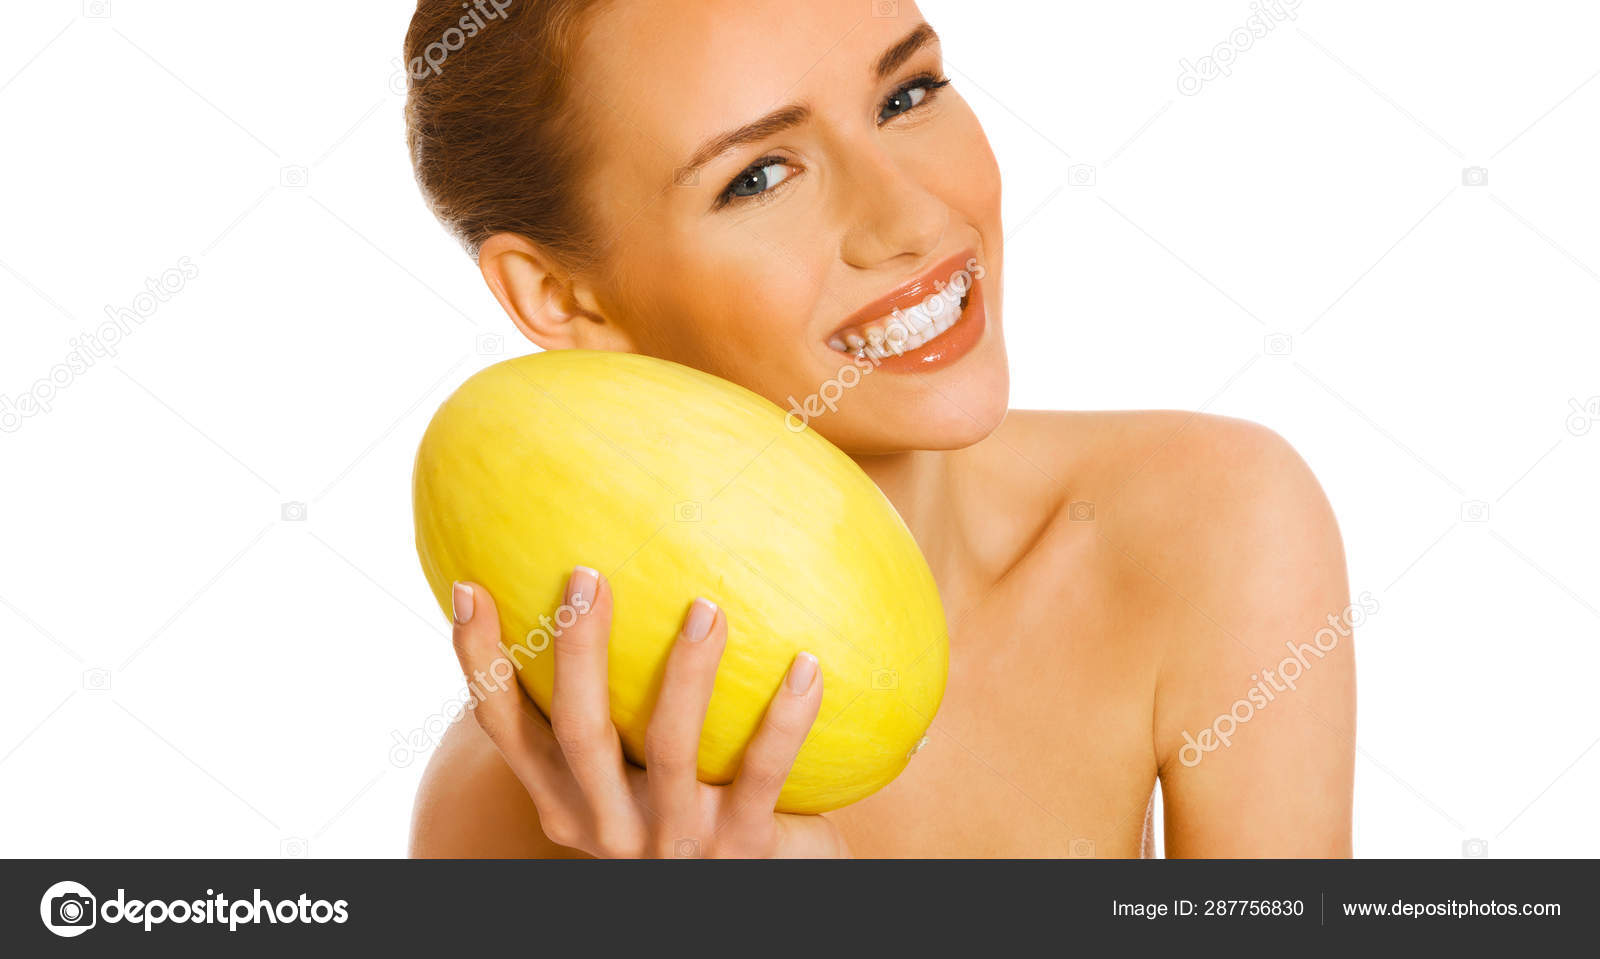 Horny bitch gives pose with holding a water melon piece